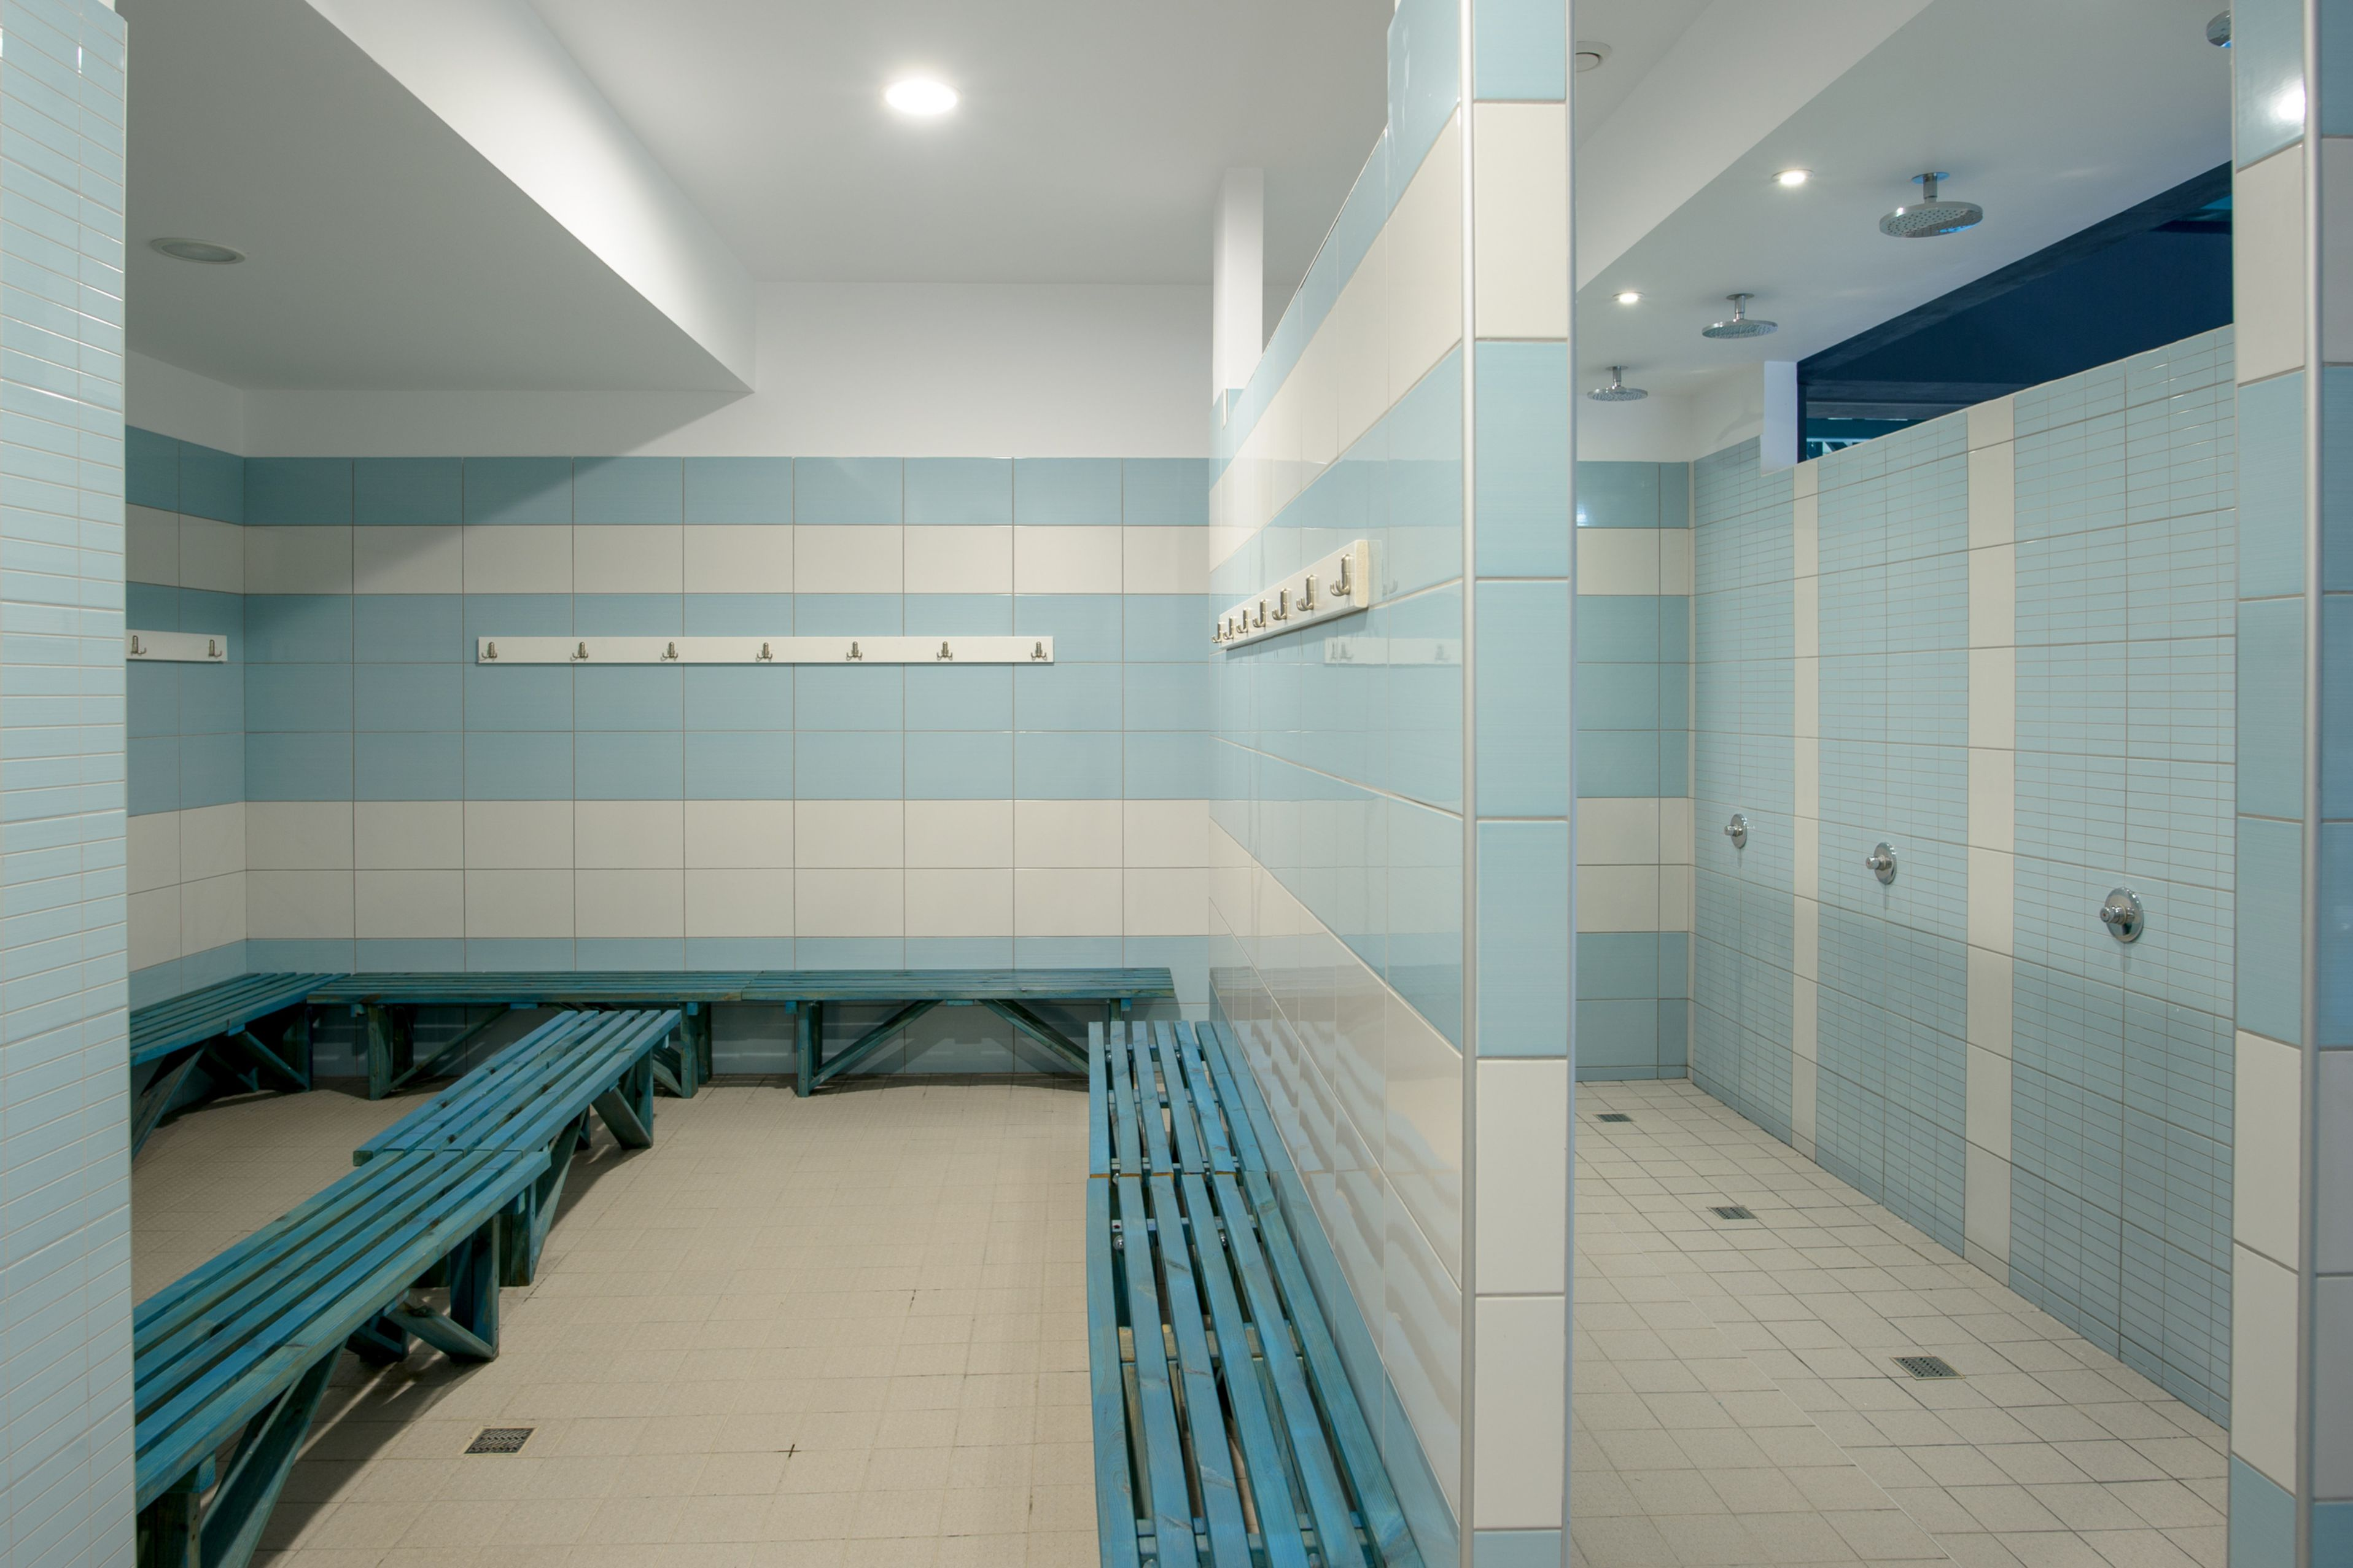 The bathroom of the Epirus Sport and Health Center in Ioannina, Greece